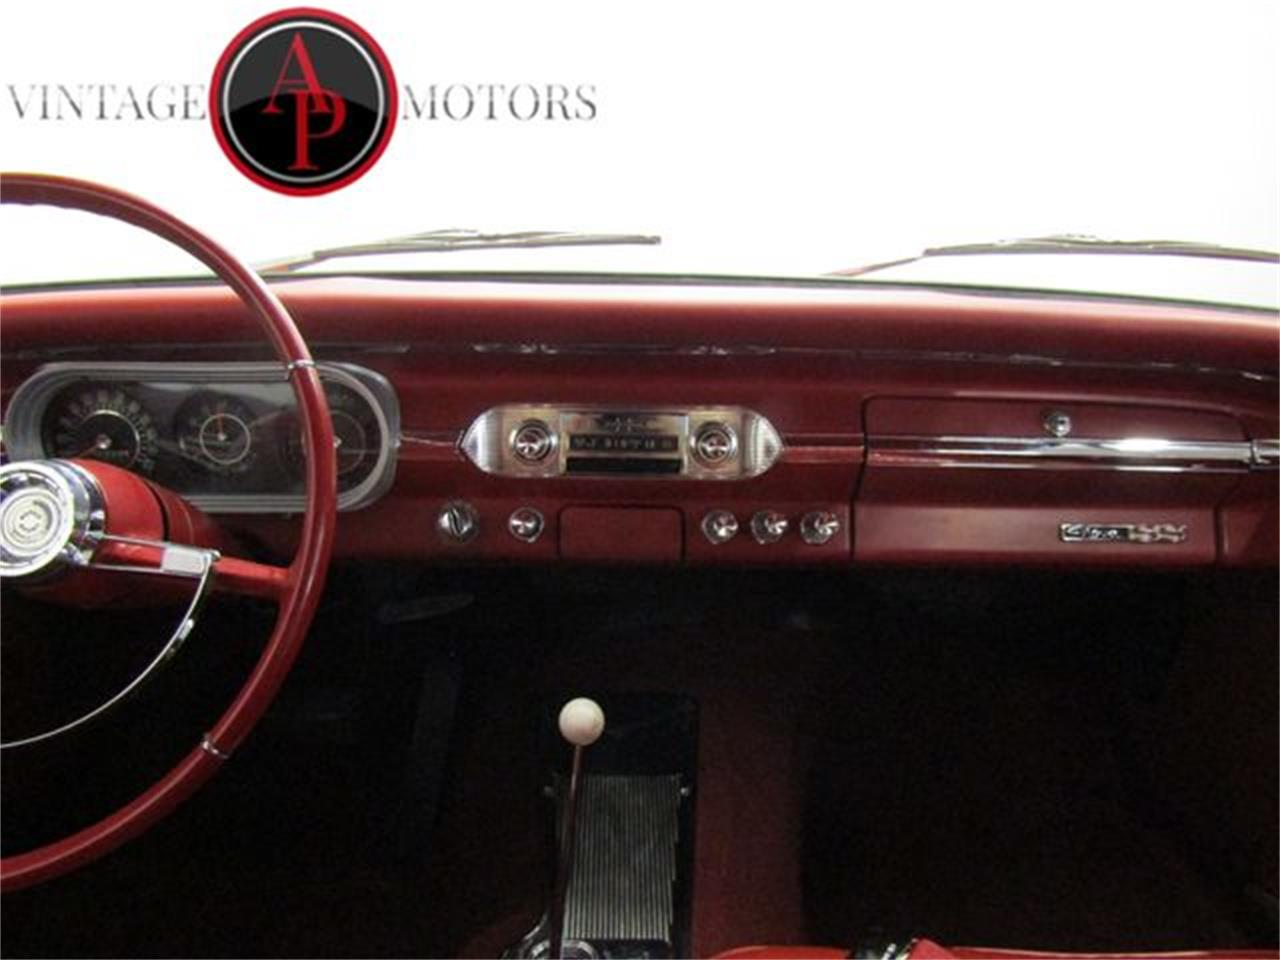 Large Picture of '63 Nova Offered by AP Vintage Motors - PX7S